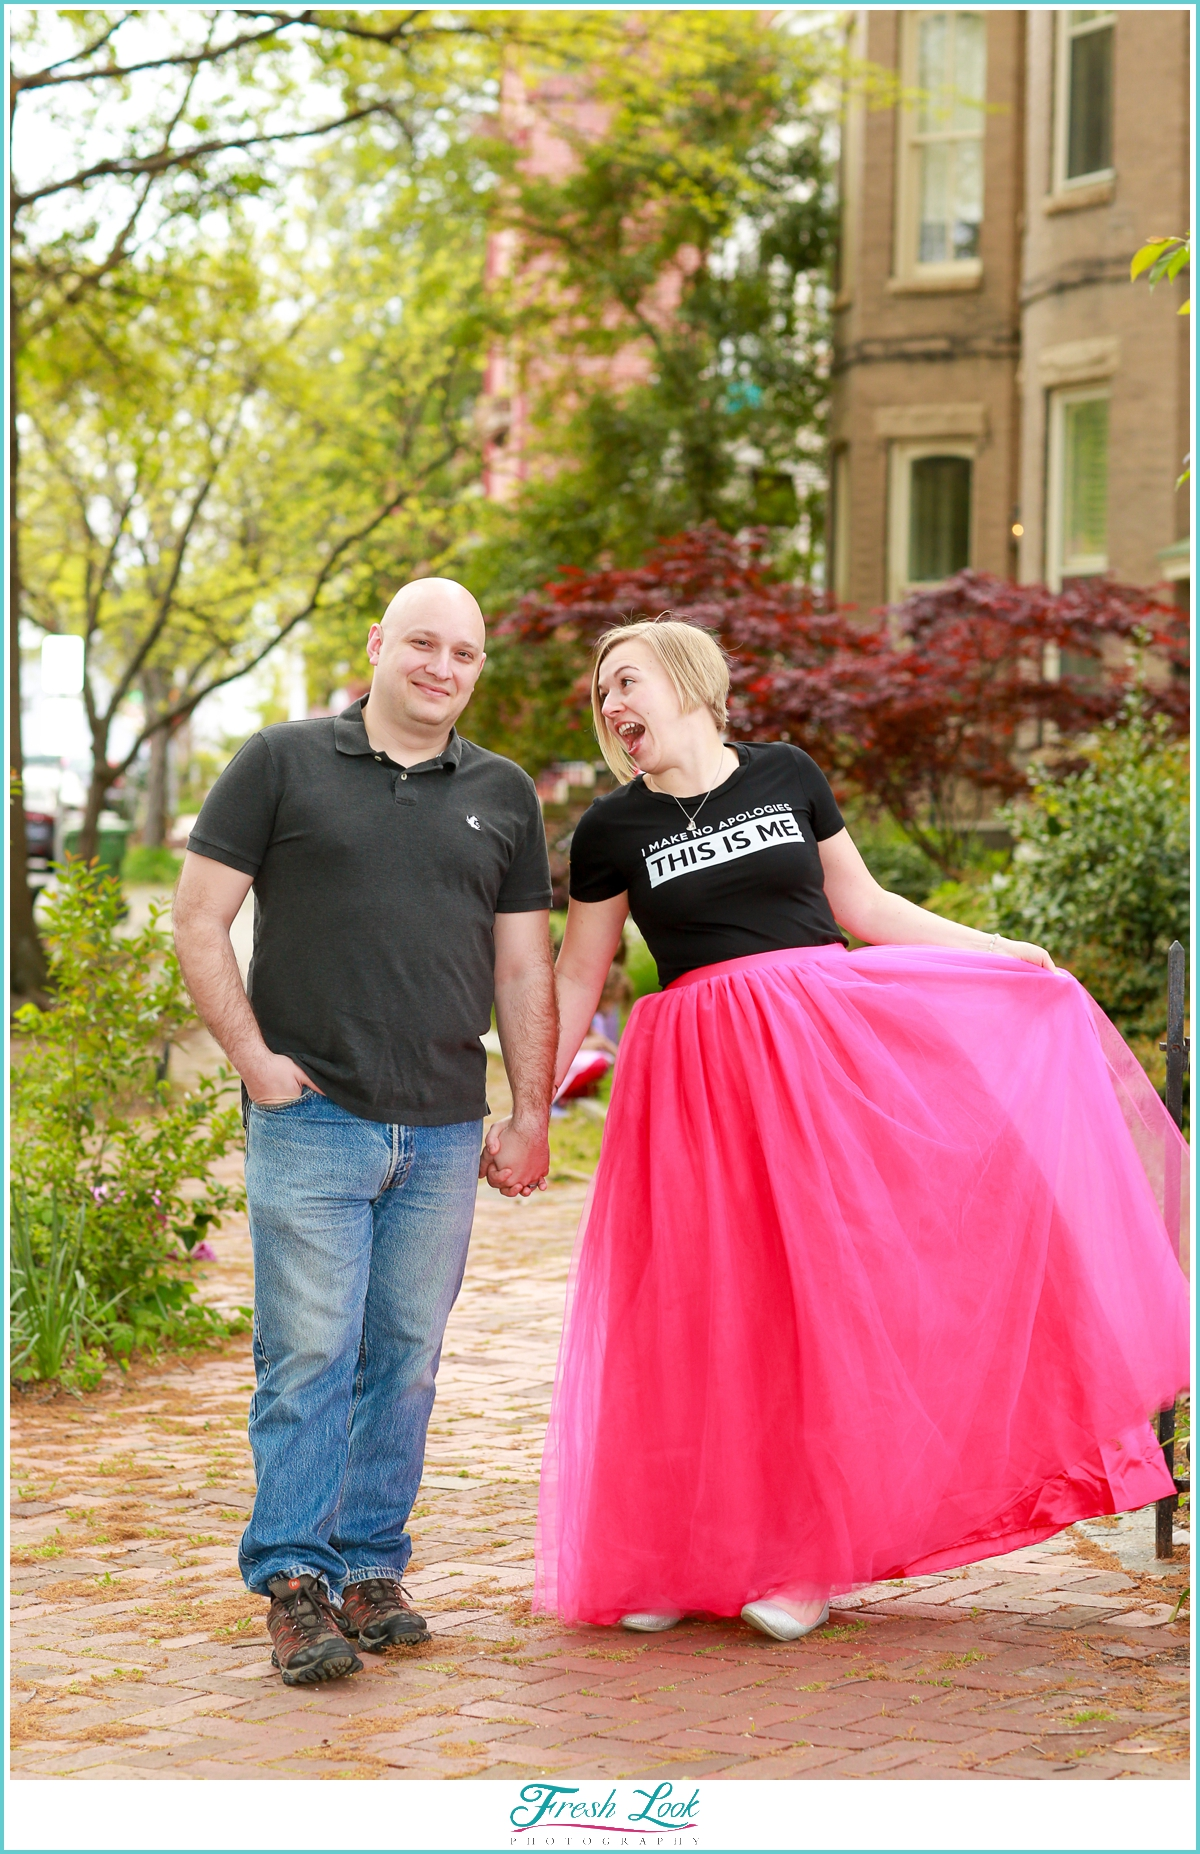 fun couples photo shoot with tulle skirt